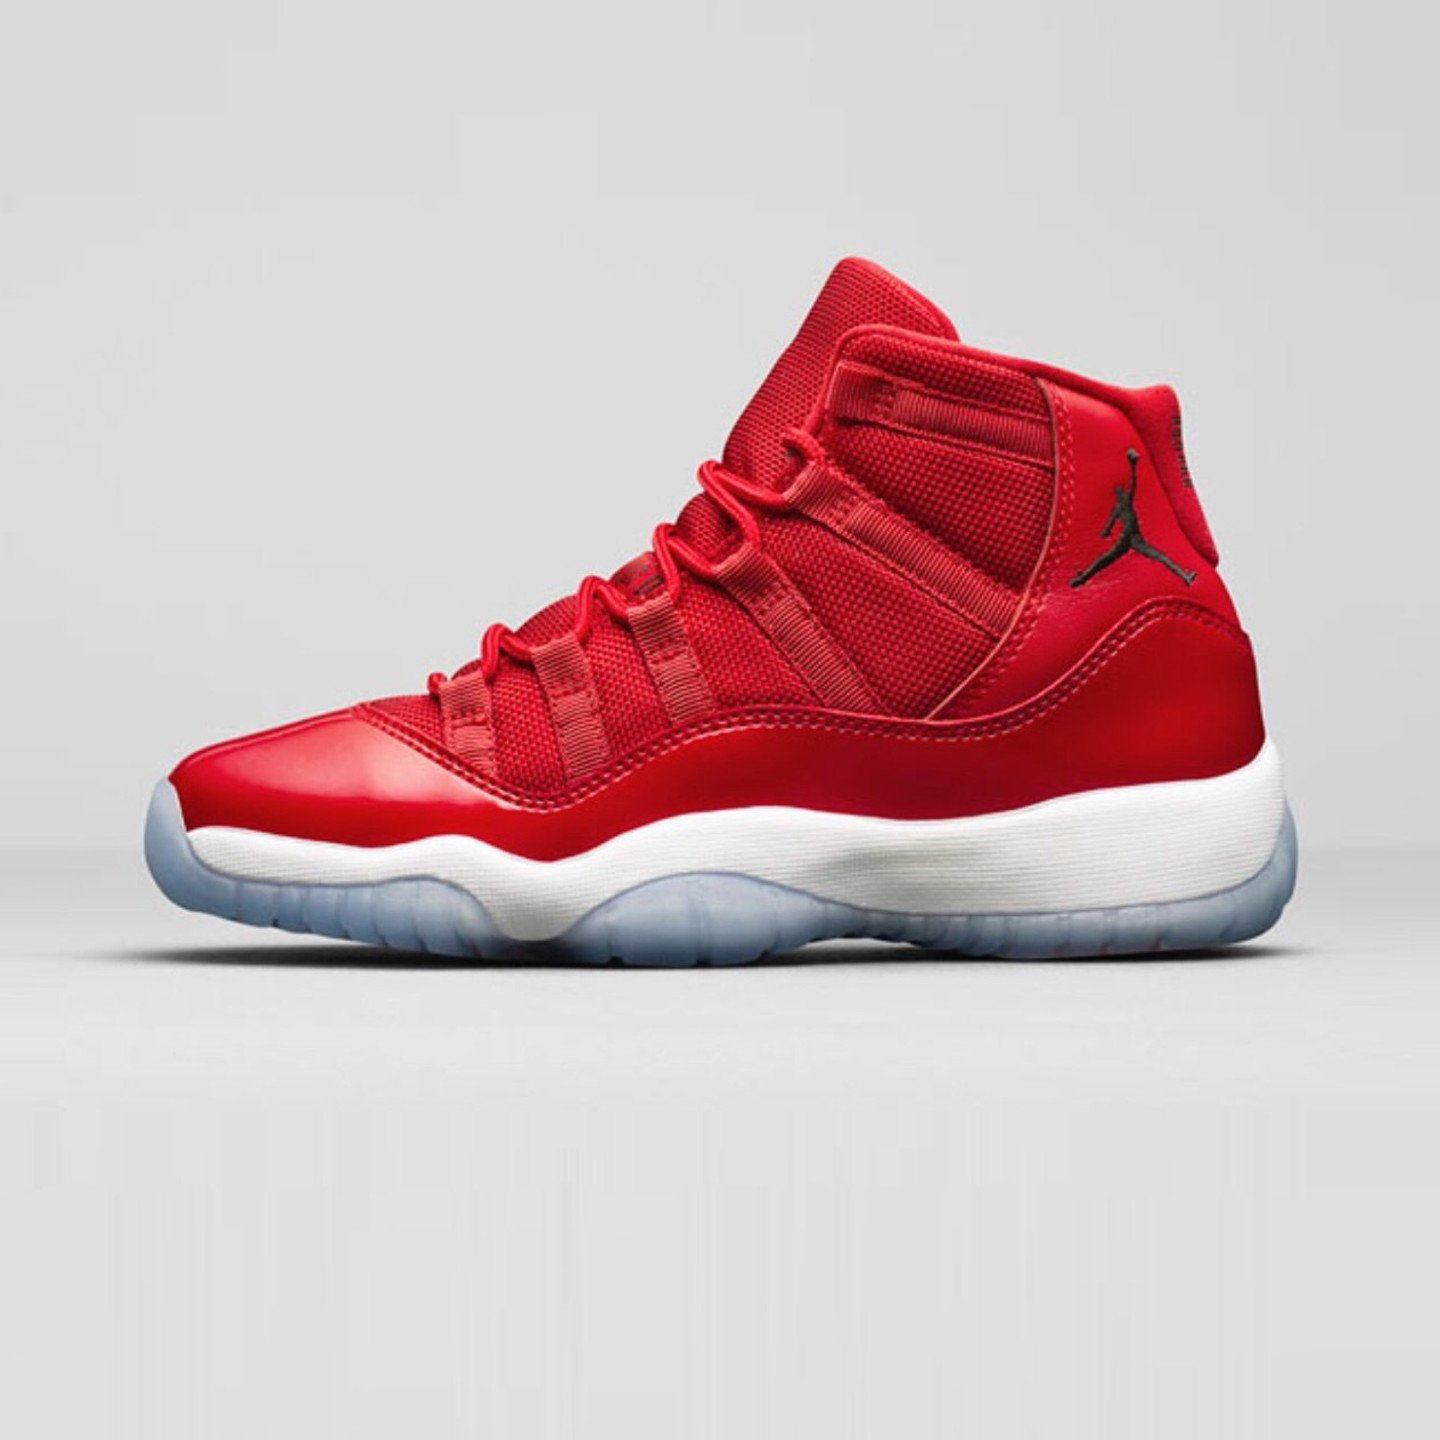 Jordan Air Jordan 11 Retro 'Win Like 96' Gym Red / Black / White 378037-623